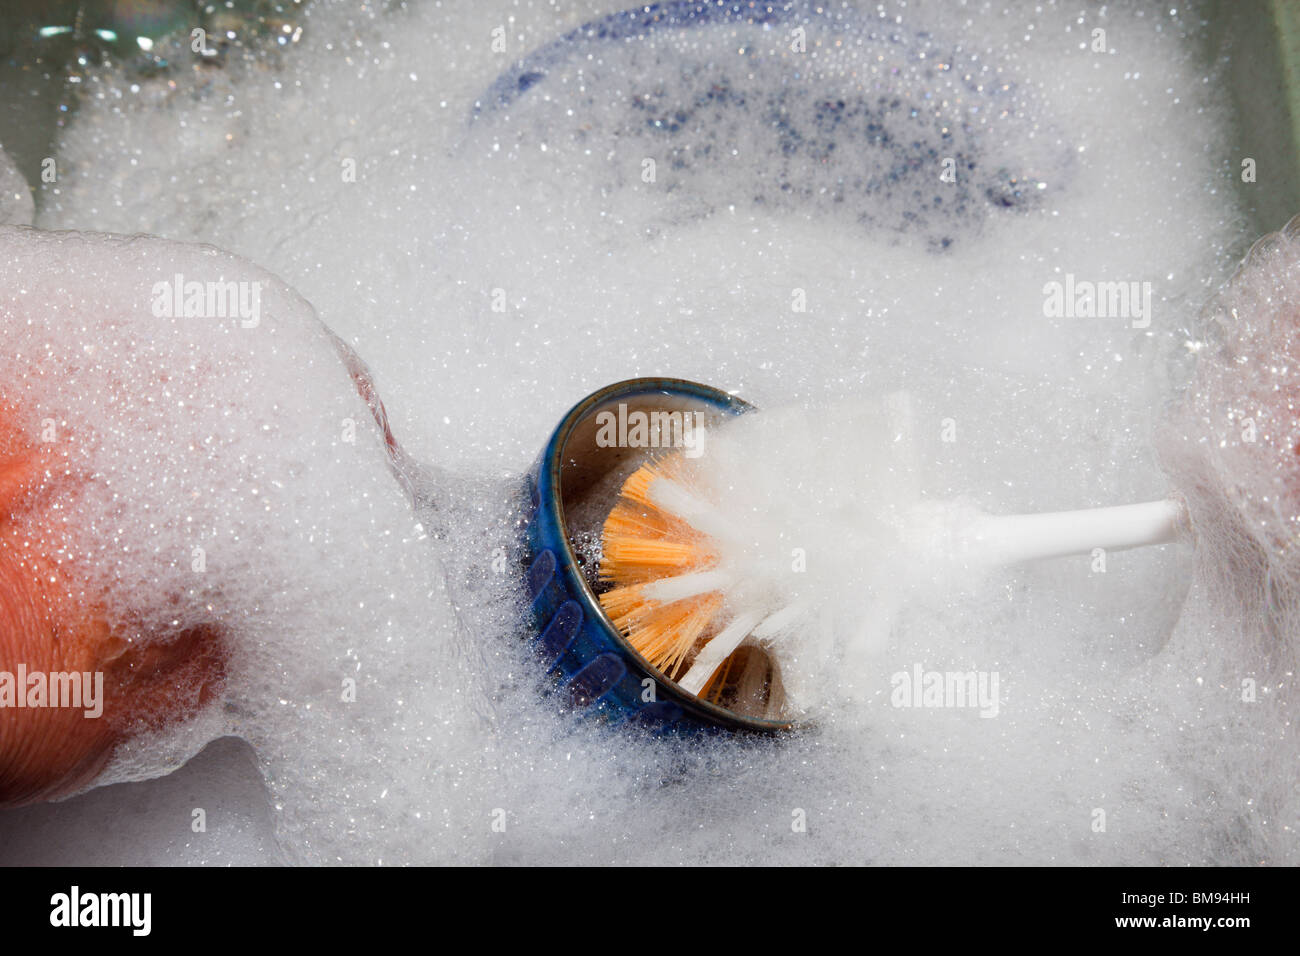 UK, Europe. Person washing up by hand using a brush with soap suds in a bowl of water. - Stock Image